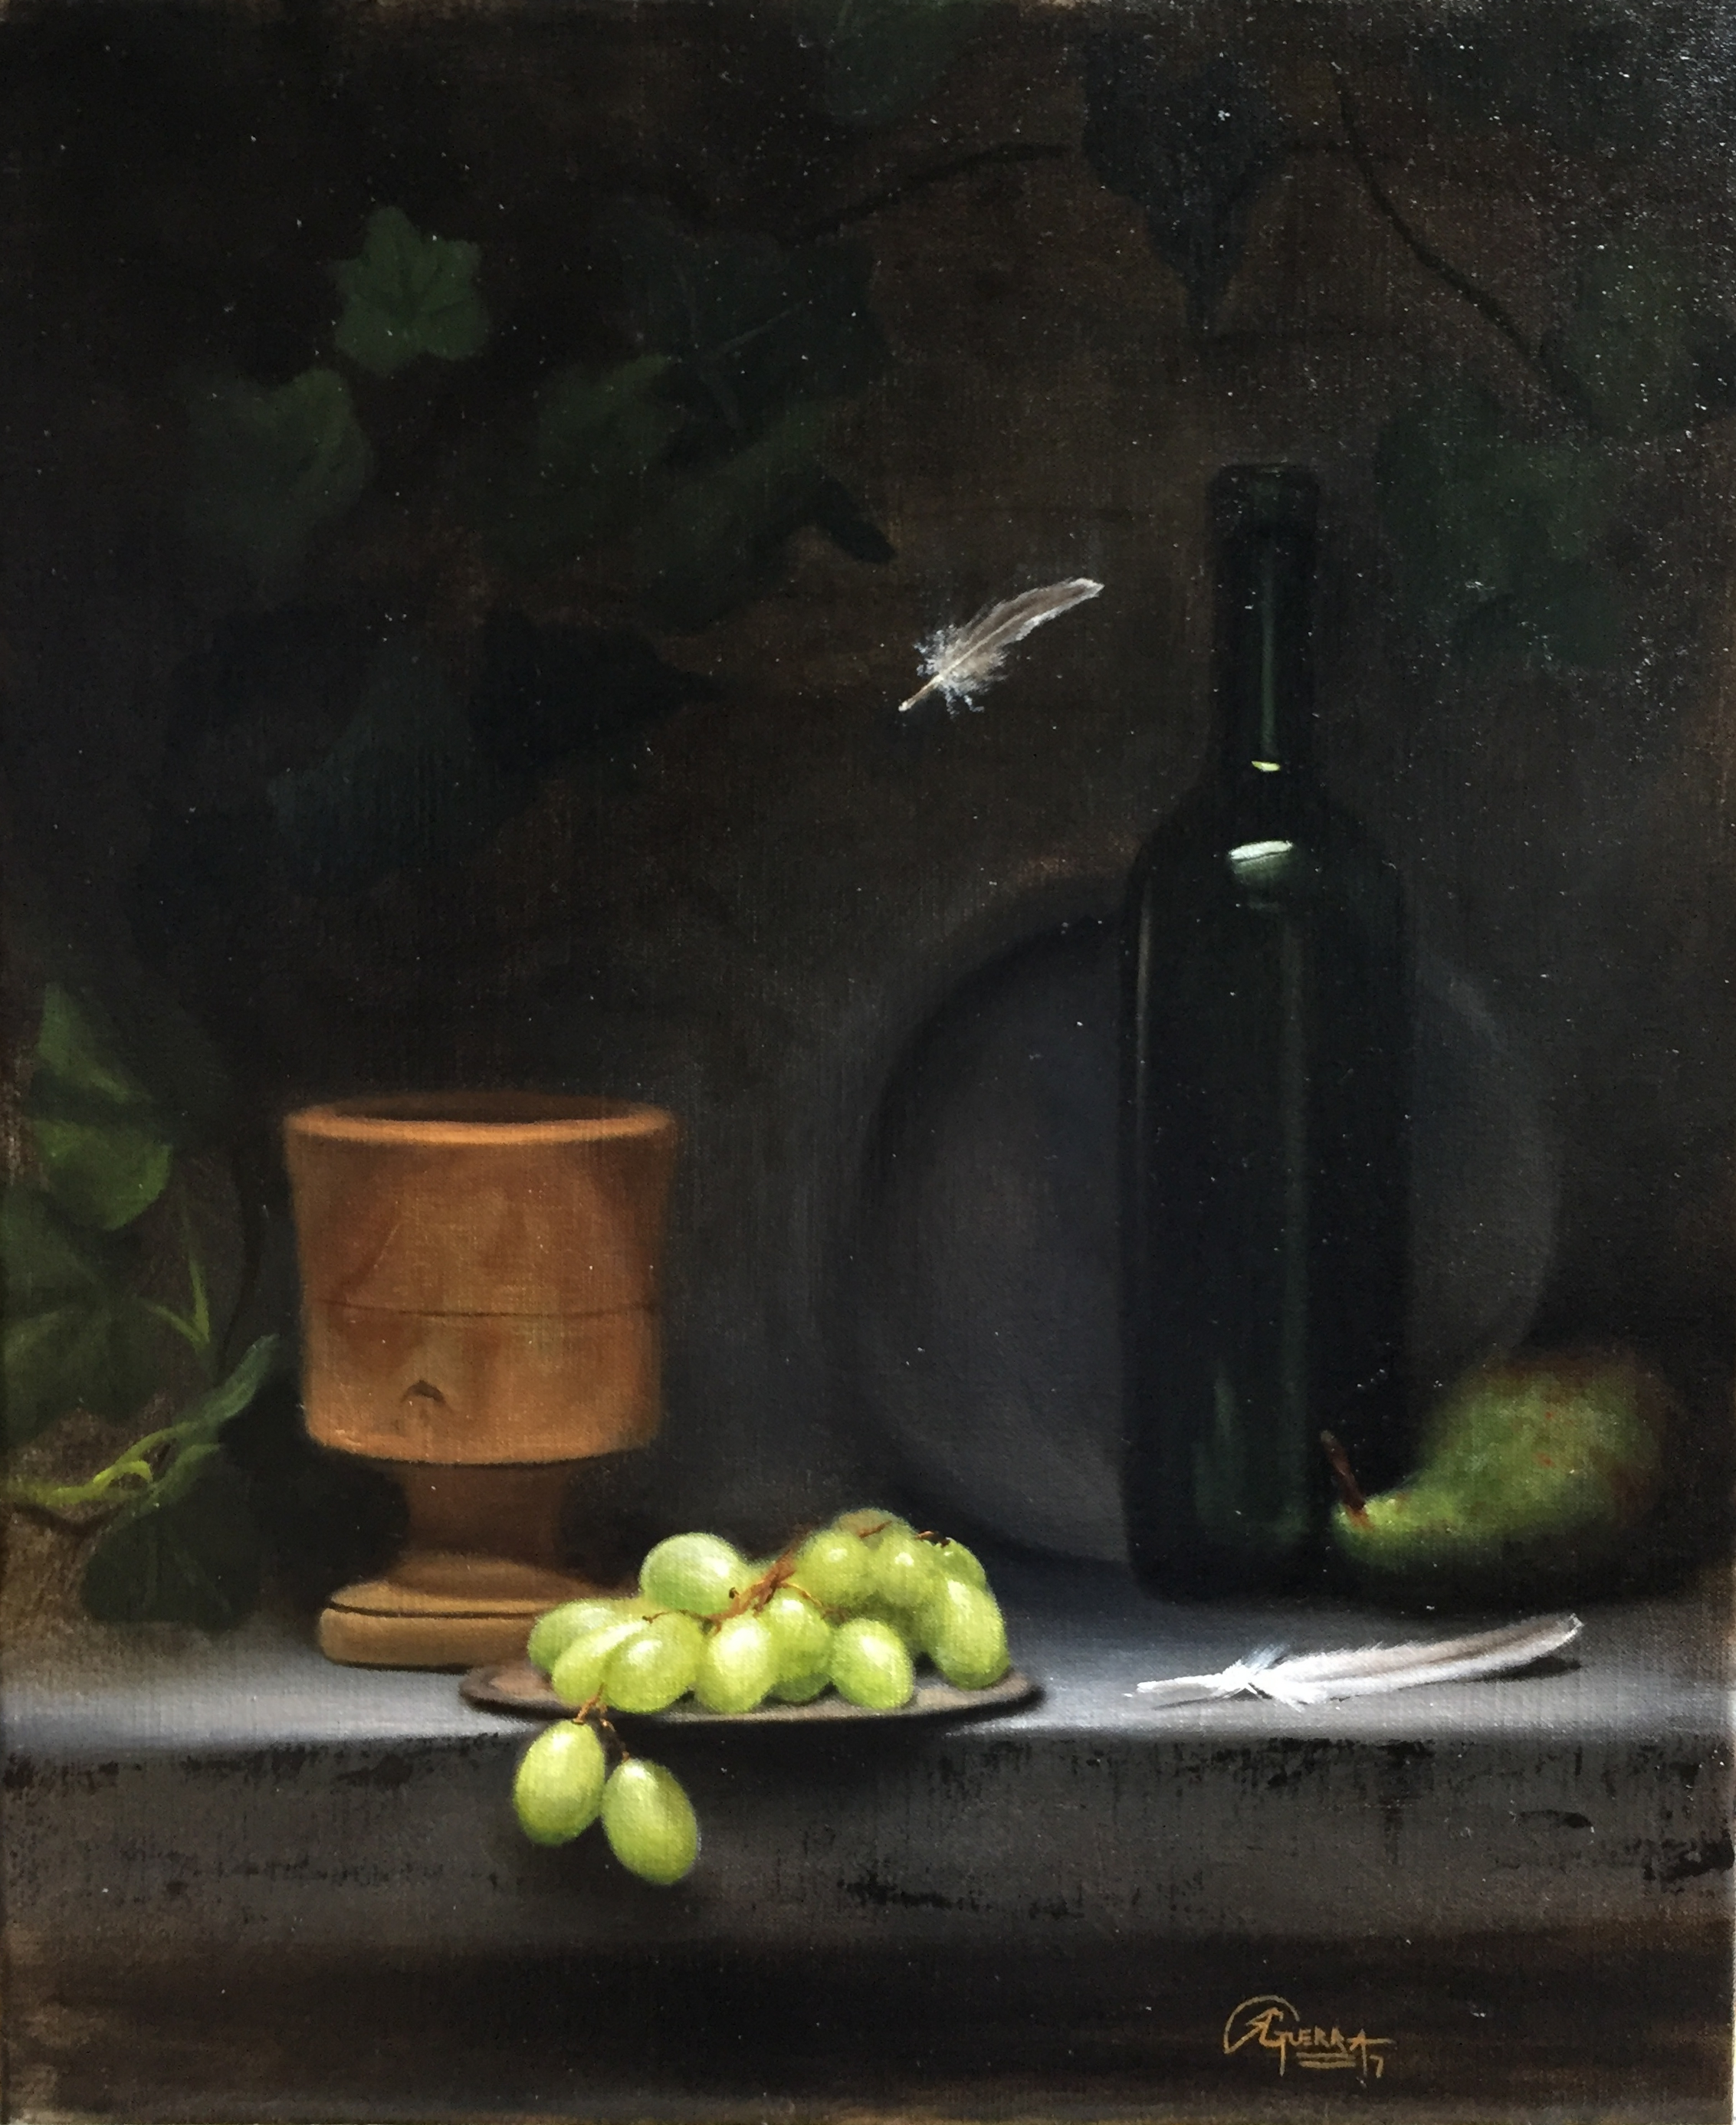 Green Grapes and Pear, Rafael Guerra Painting